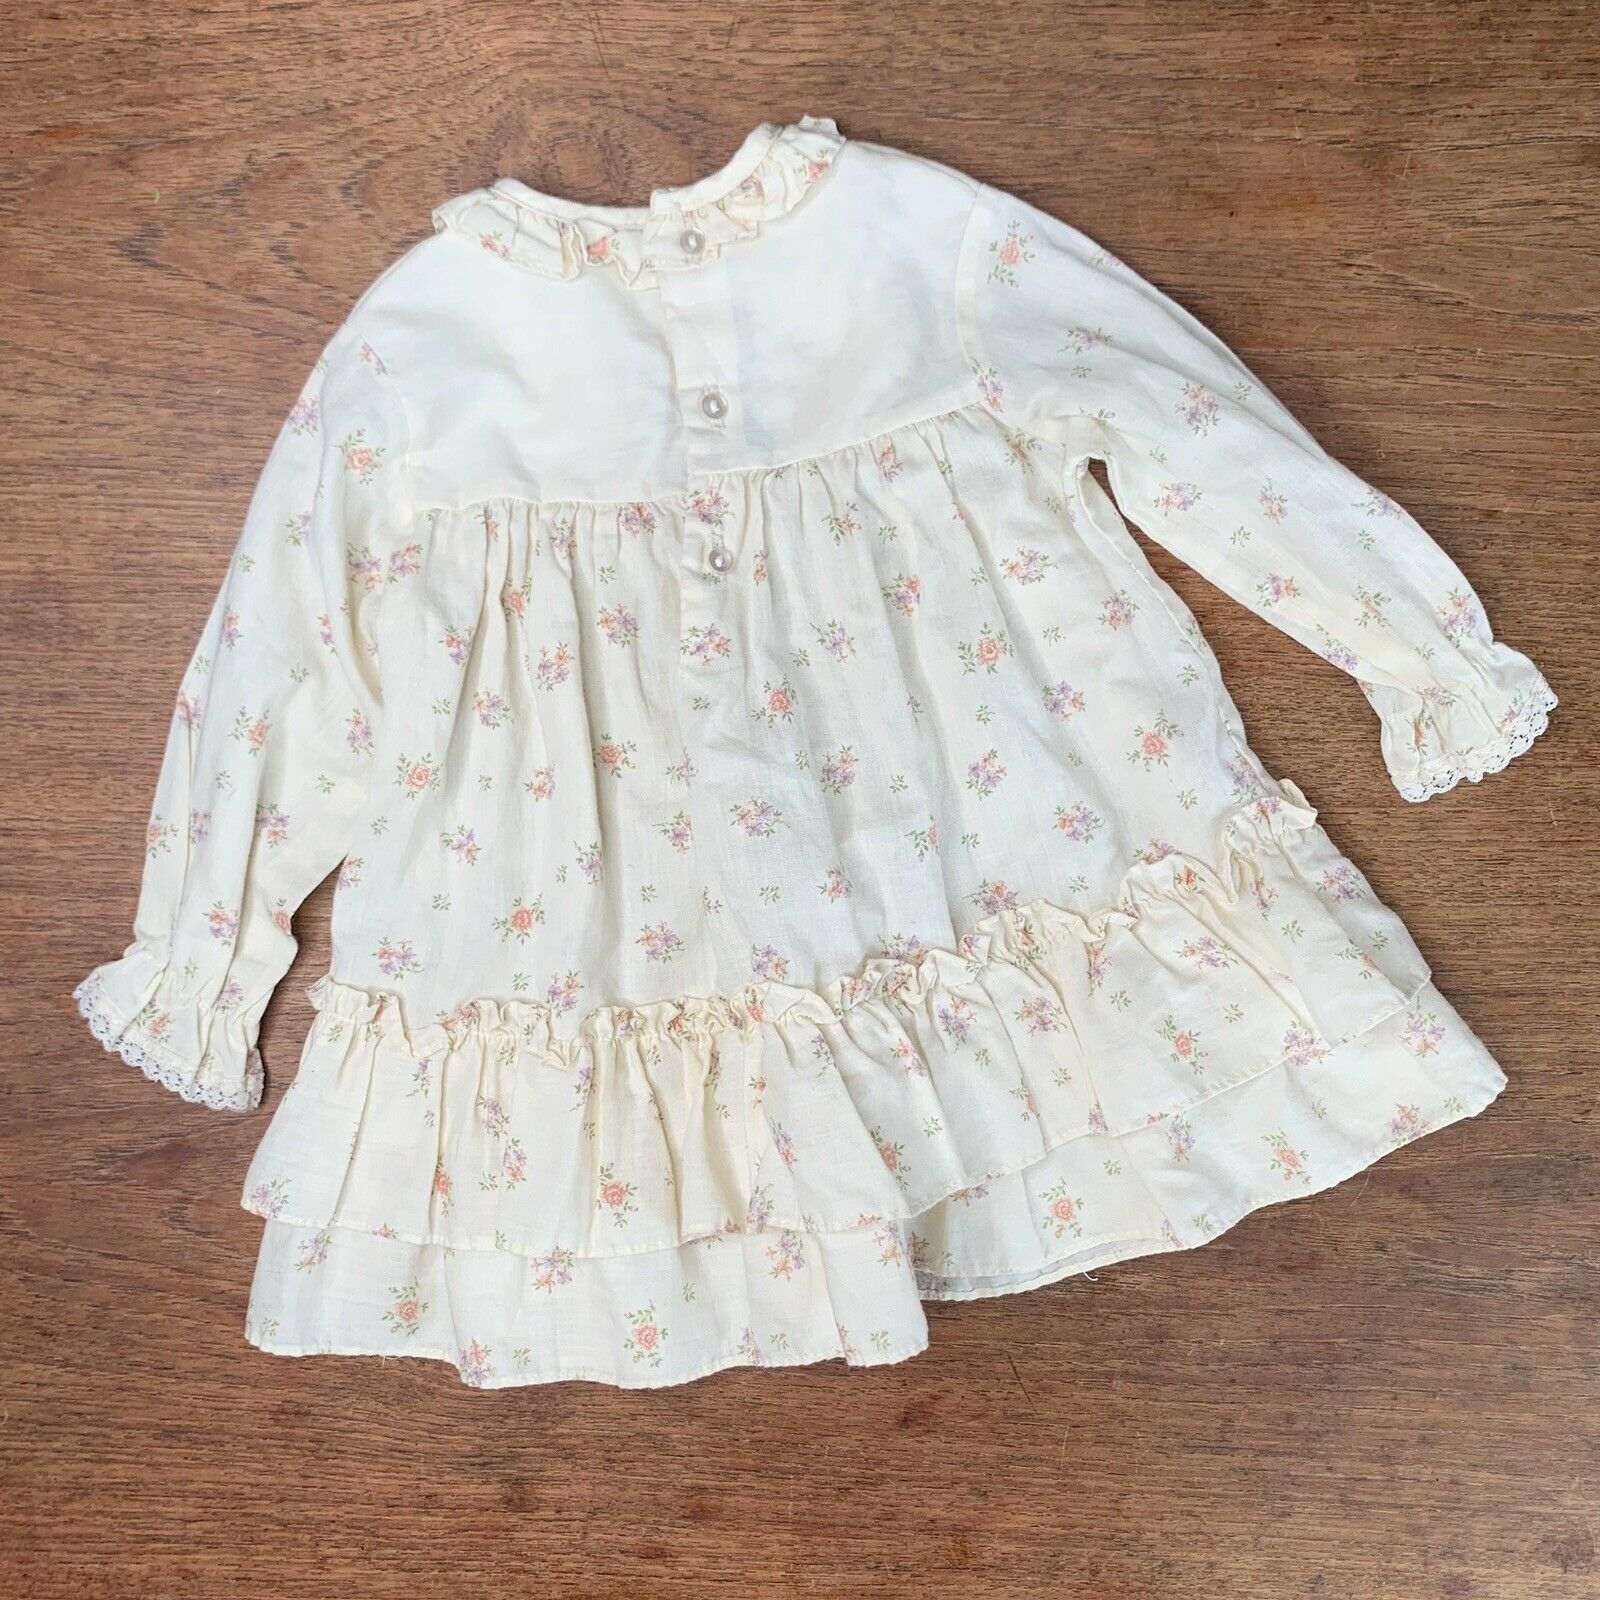 Vintage Girls 3T Tiered Prairie Dress Floral Lace… - image 4